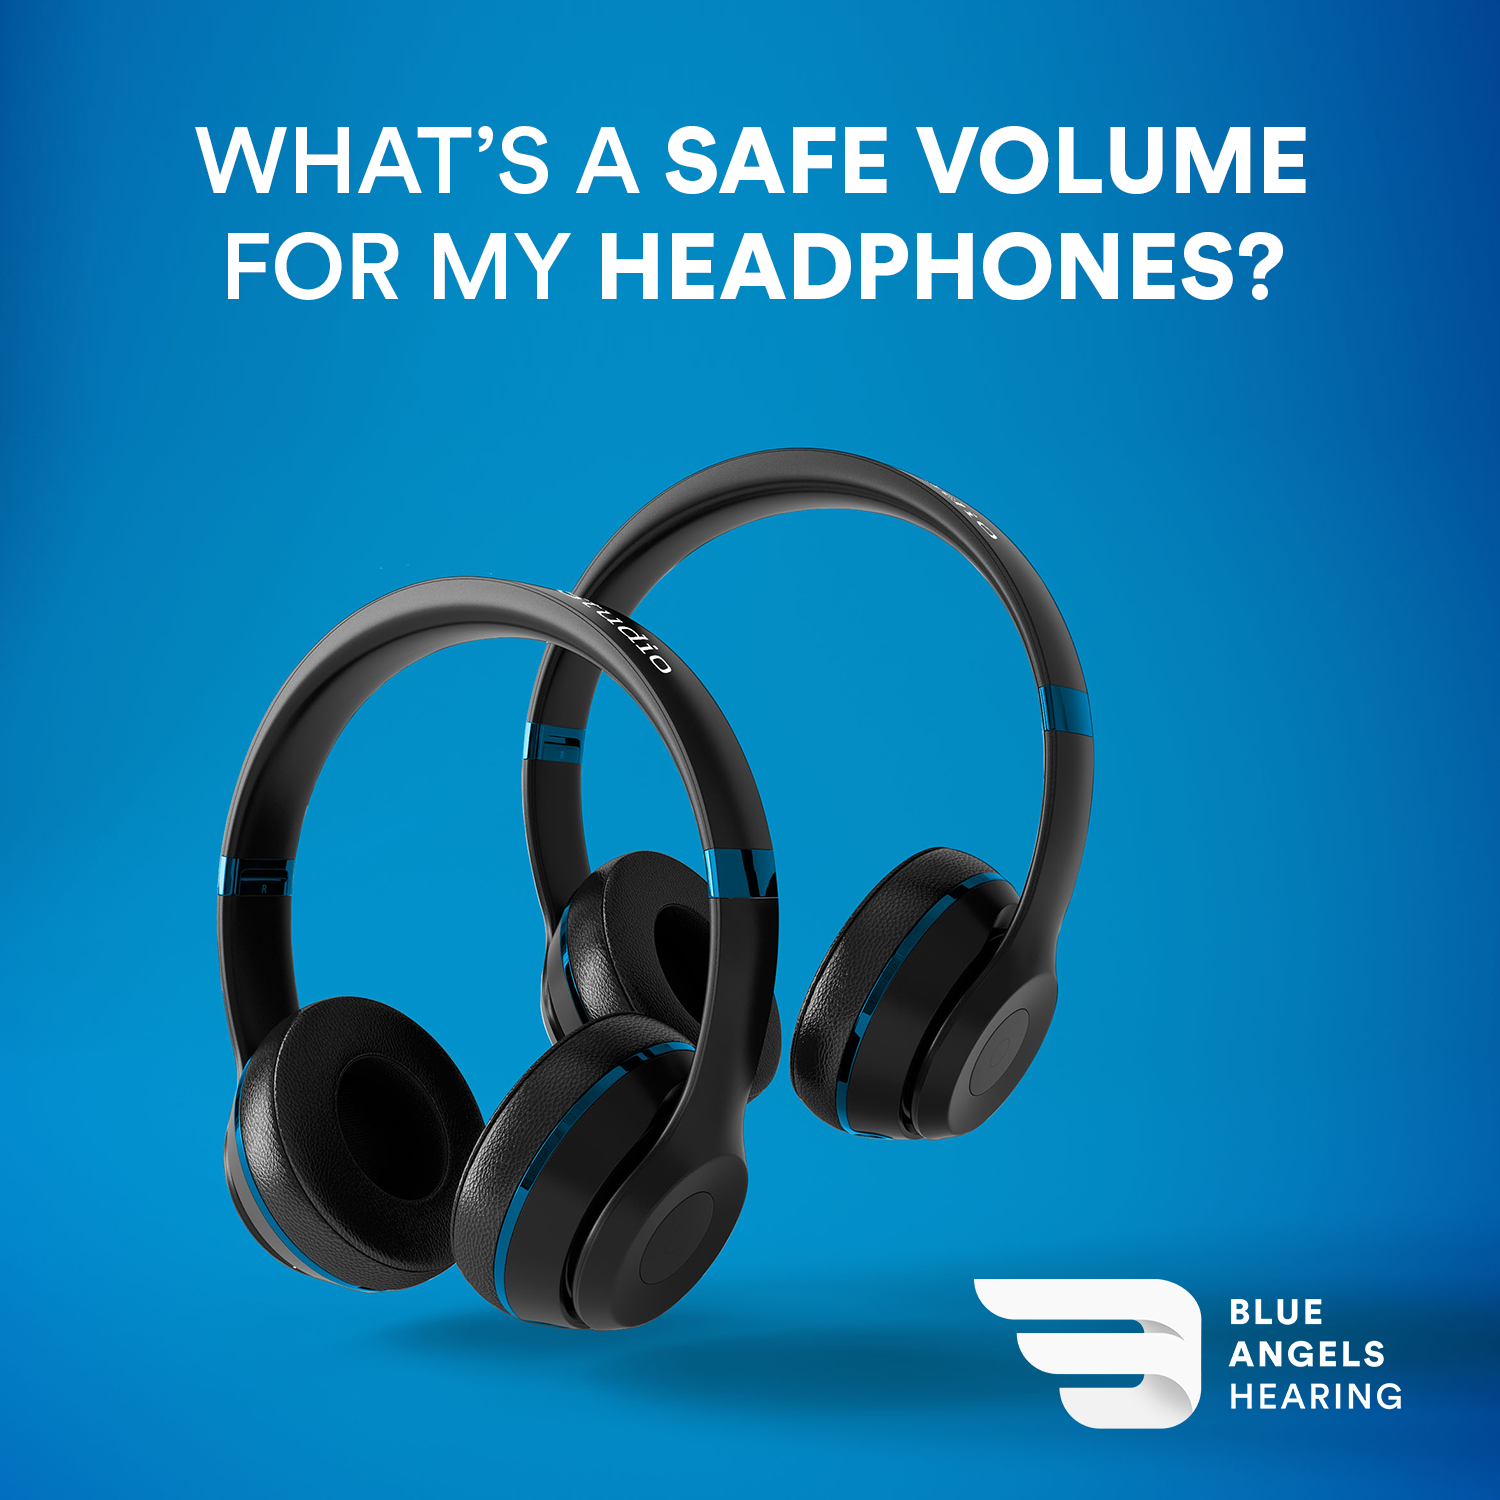 What's a Safe Volume for My Headphones?